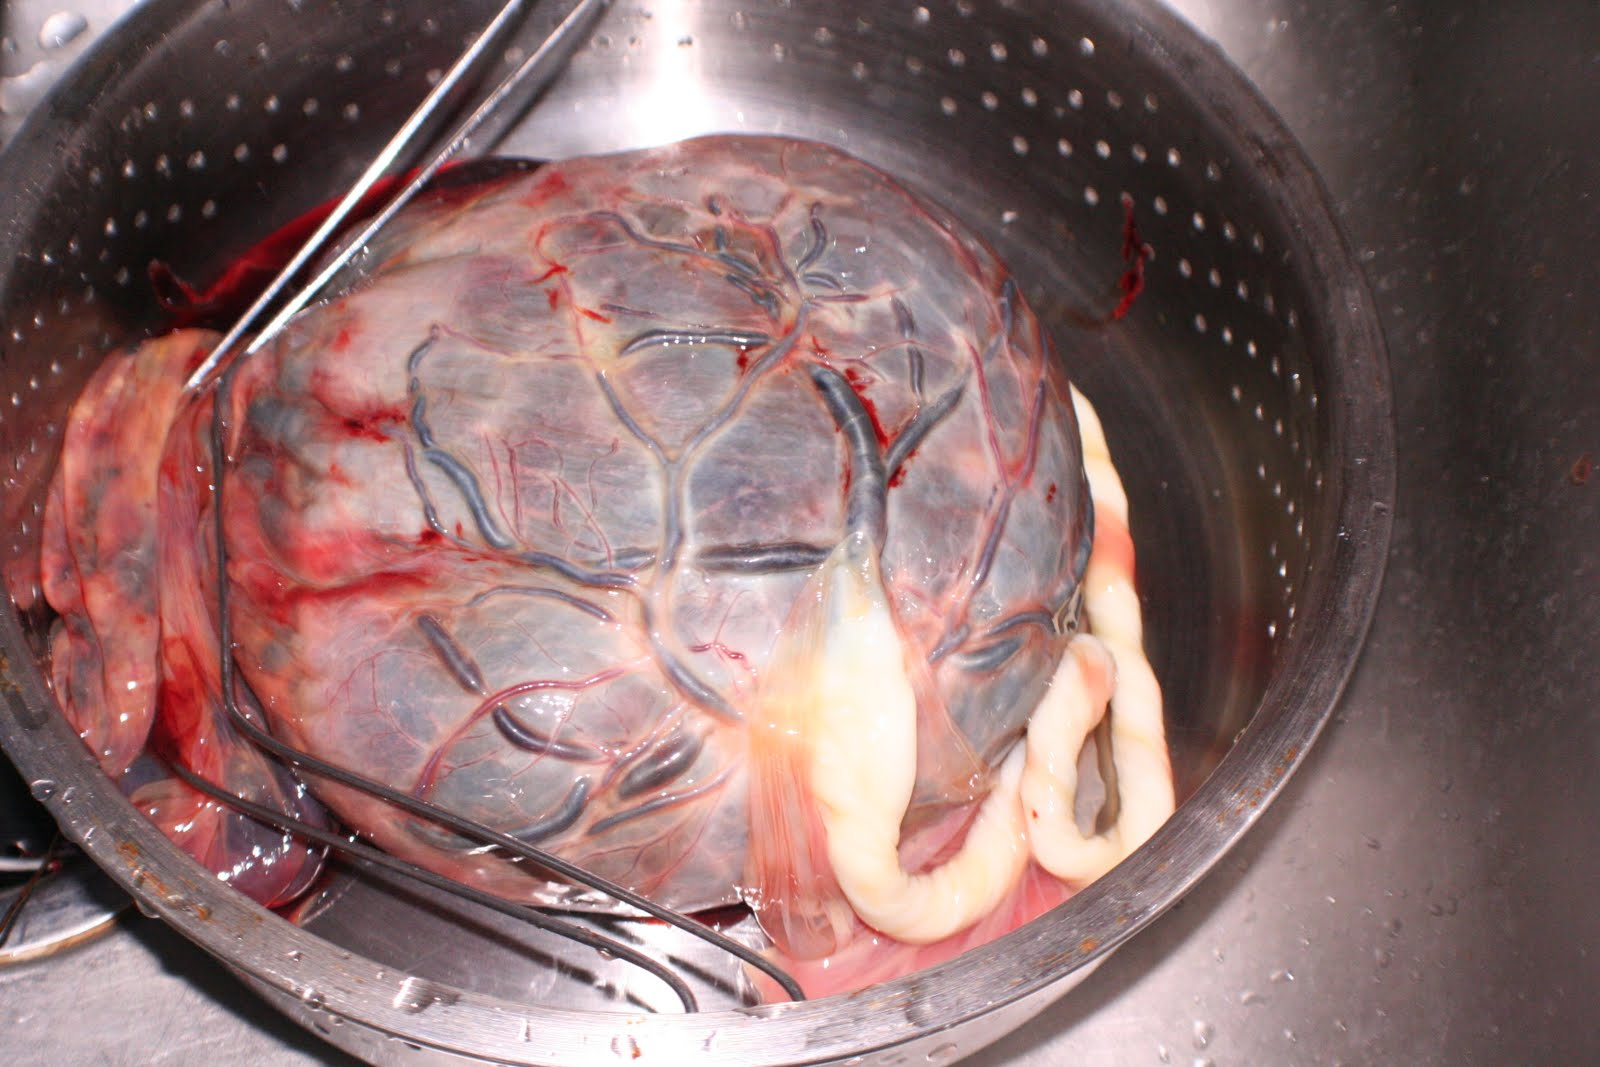 thesis placenta The finestructural changes of the interareolar porcine placenta during pregnancy are described after perfusion fixation of the placenta the change in the thickness of the placental barrier from day 30 to day 110 of gestation is much more evident than after immerson fixation as has been used by all.